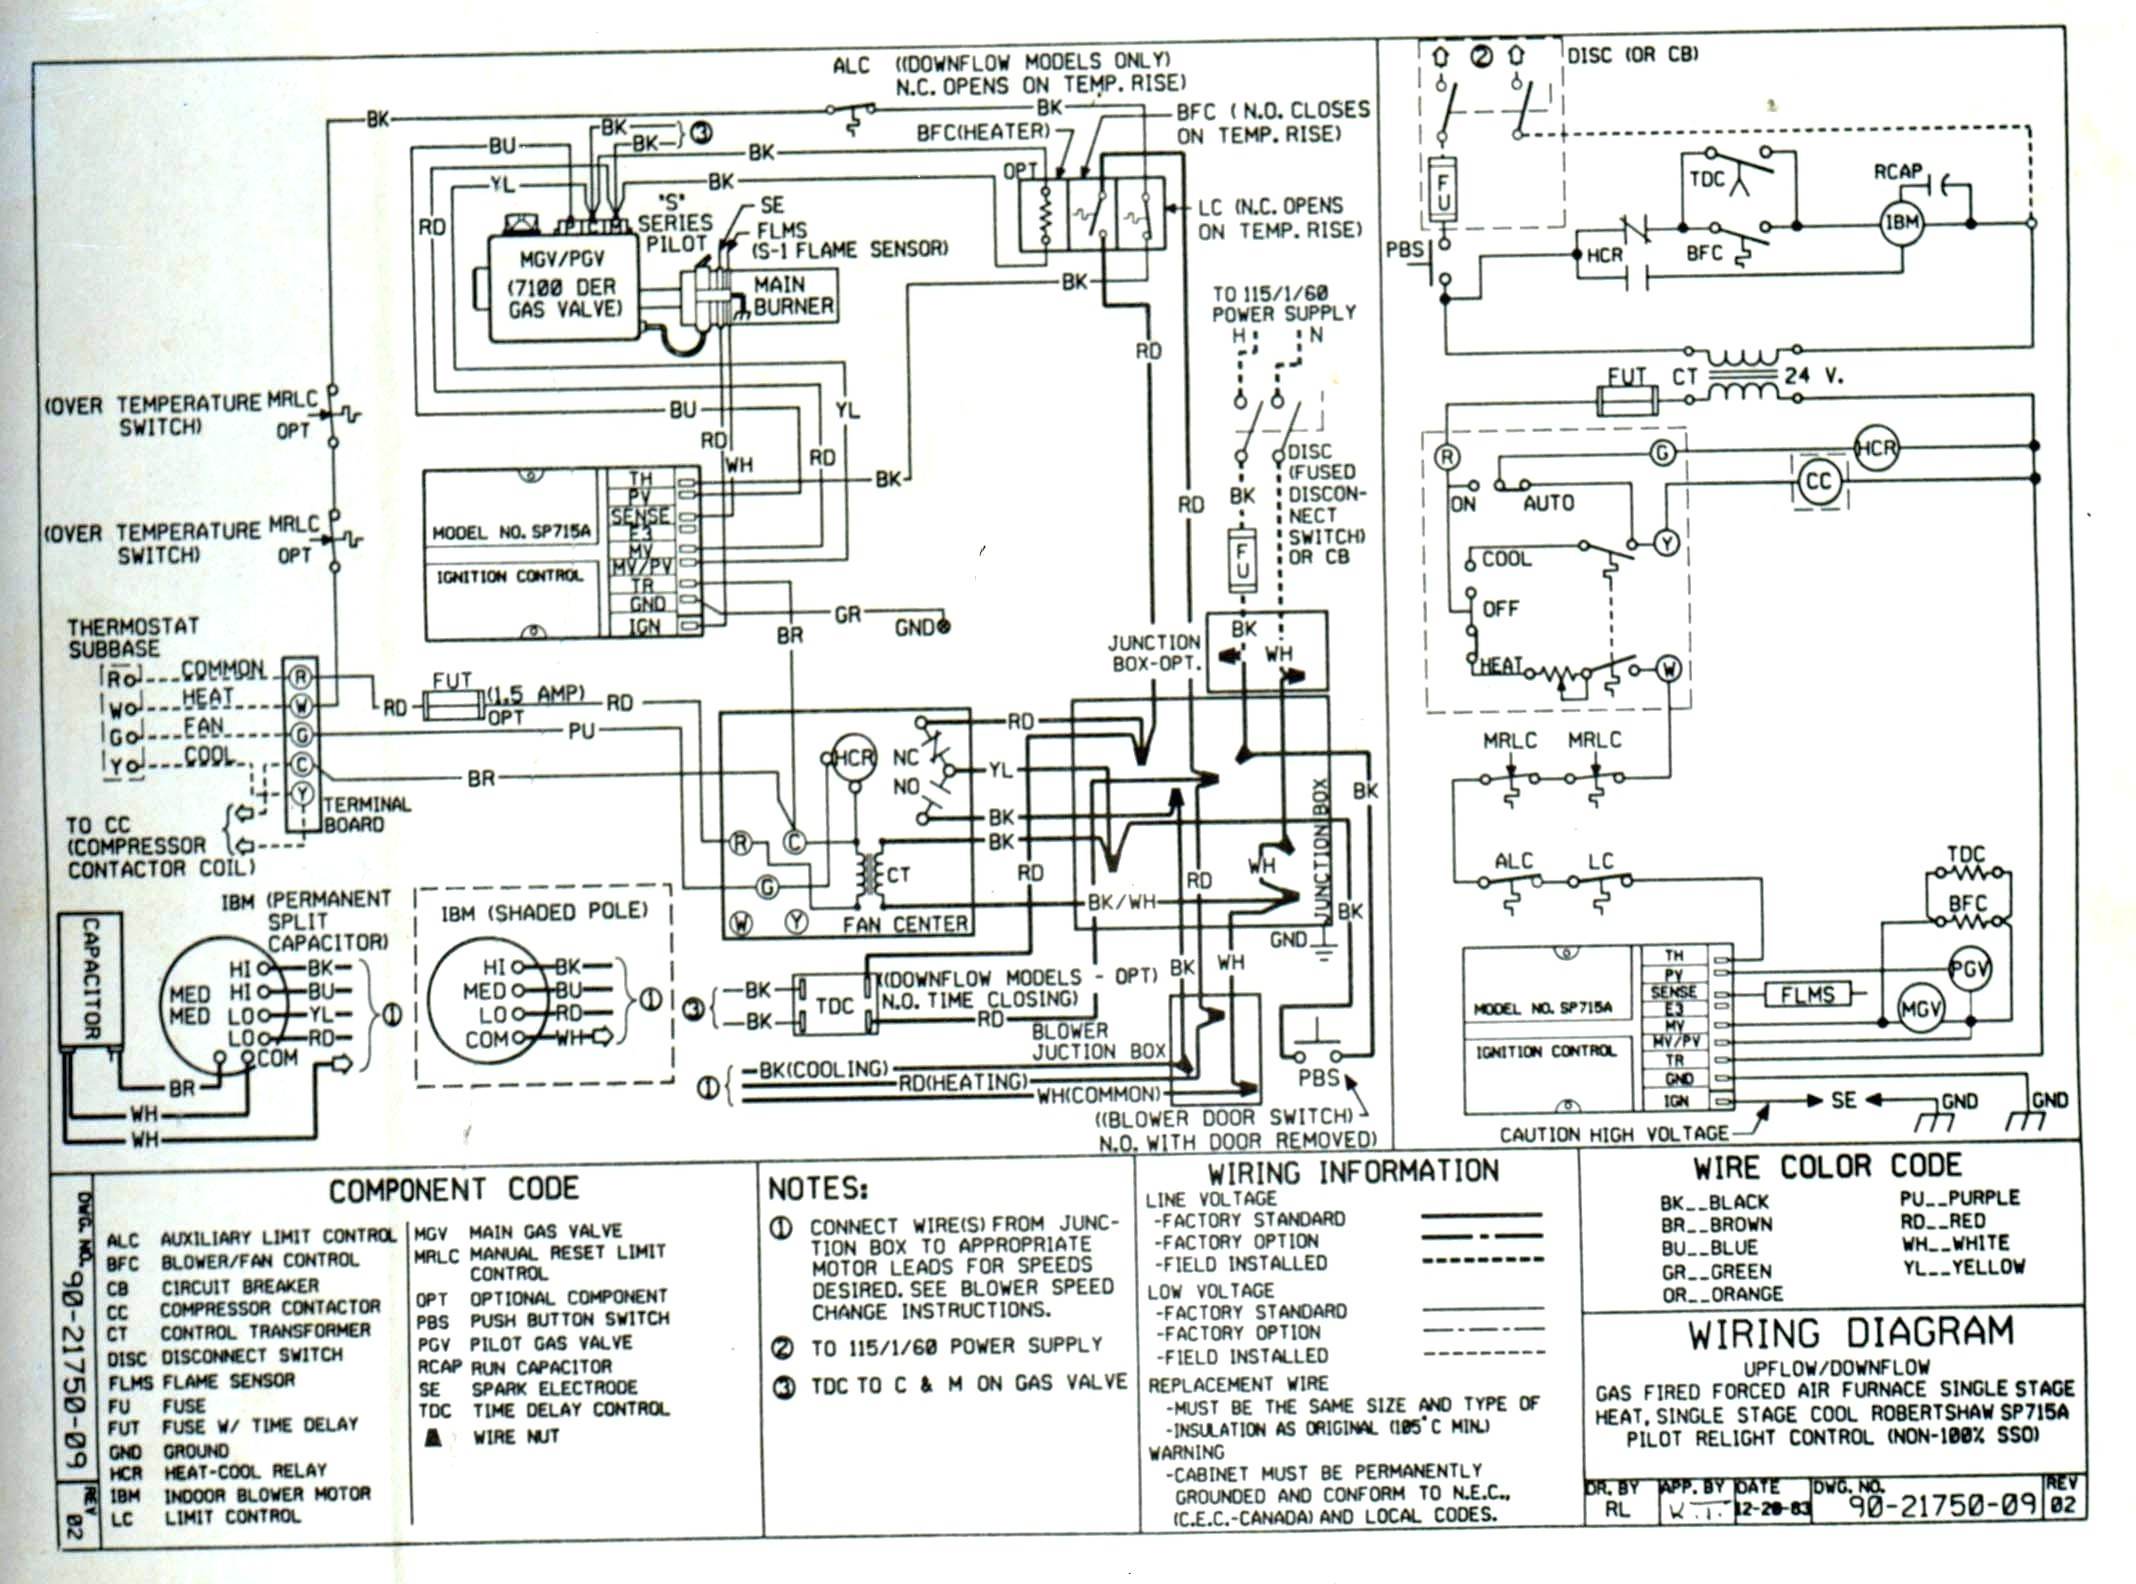 Gas Pump Diagram Goodman Heat Pump Package Unit Wiring Diagram Sample Of Gas Pump Diagram Gas Furnace thermostat Wiring Diagram Collection